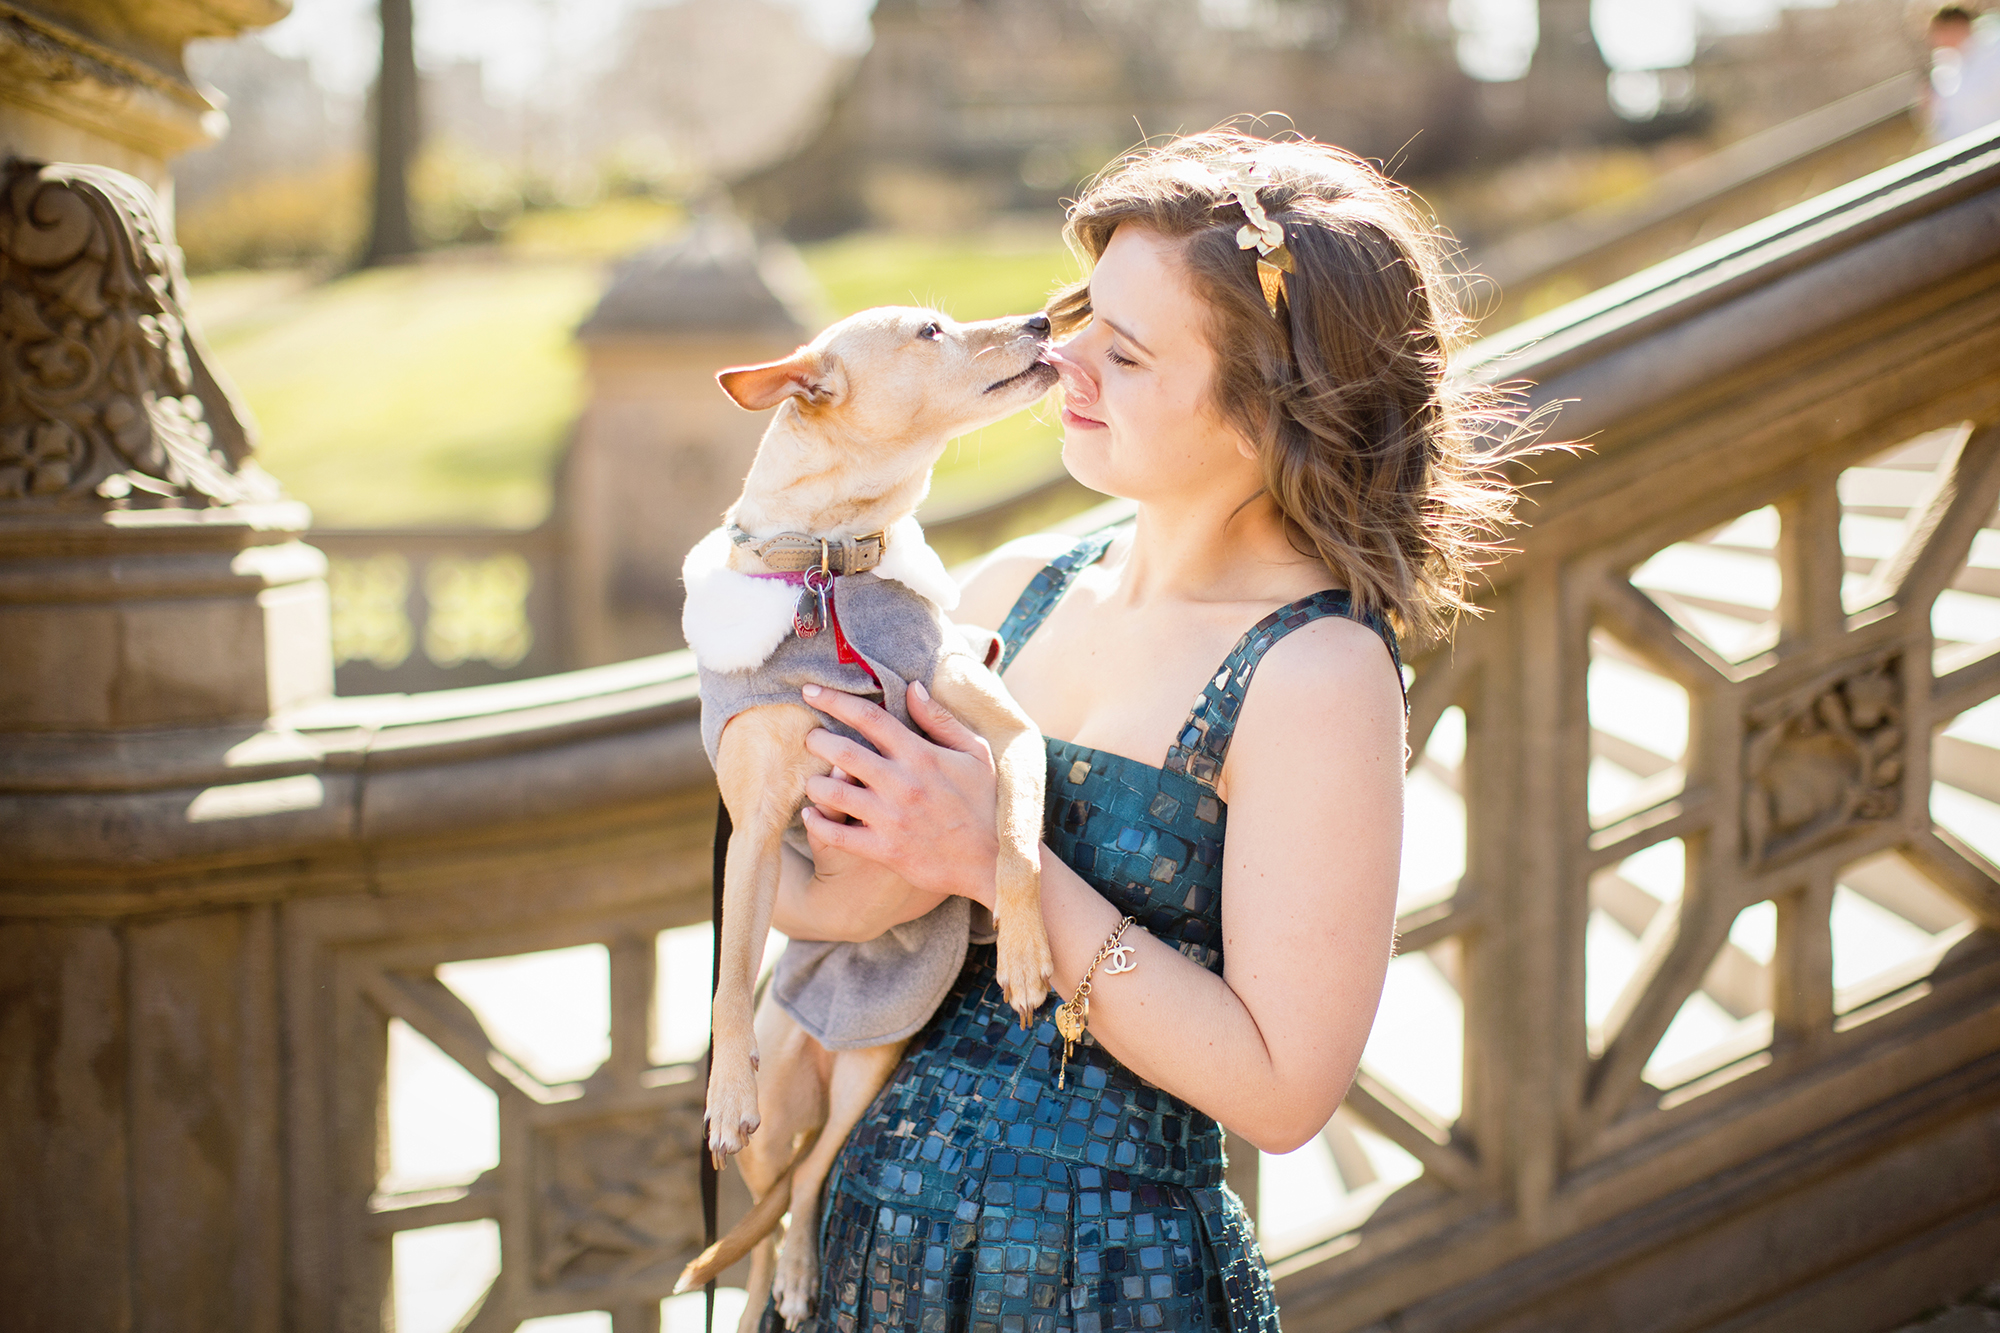 Seriously_Sabrina_Photography_New_York_City_NYC_Gossip_Girl_Dog_Blogger_Little_Holly_21.jpg